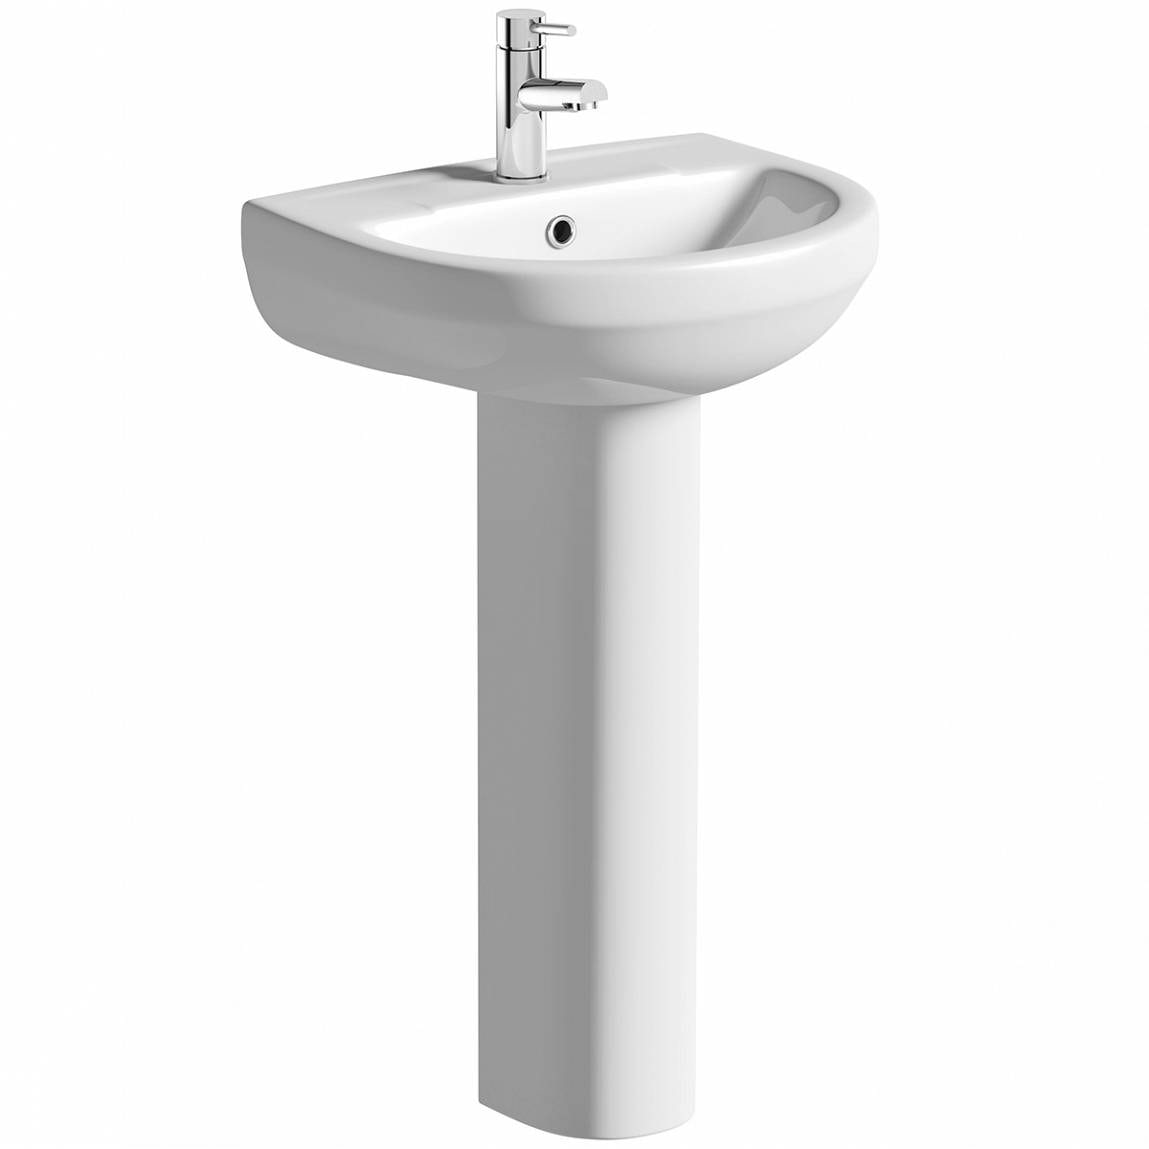 Orchard Eden 1 tap hole full pedestal basin with waste